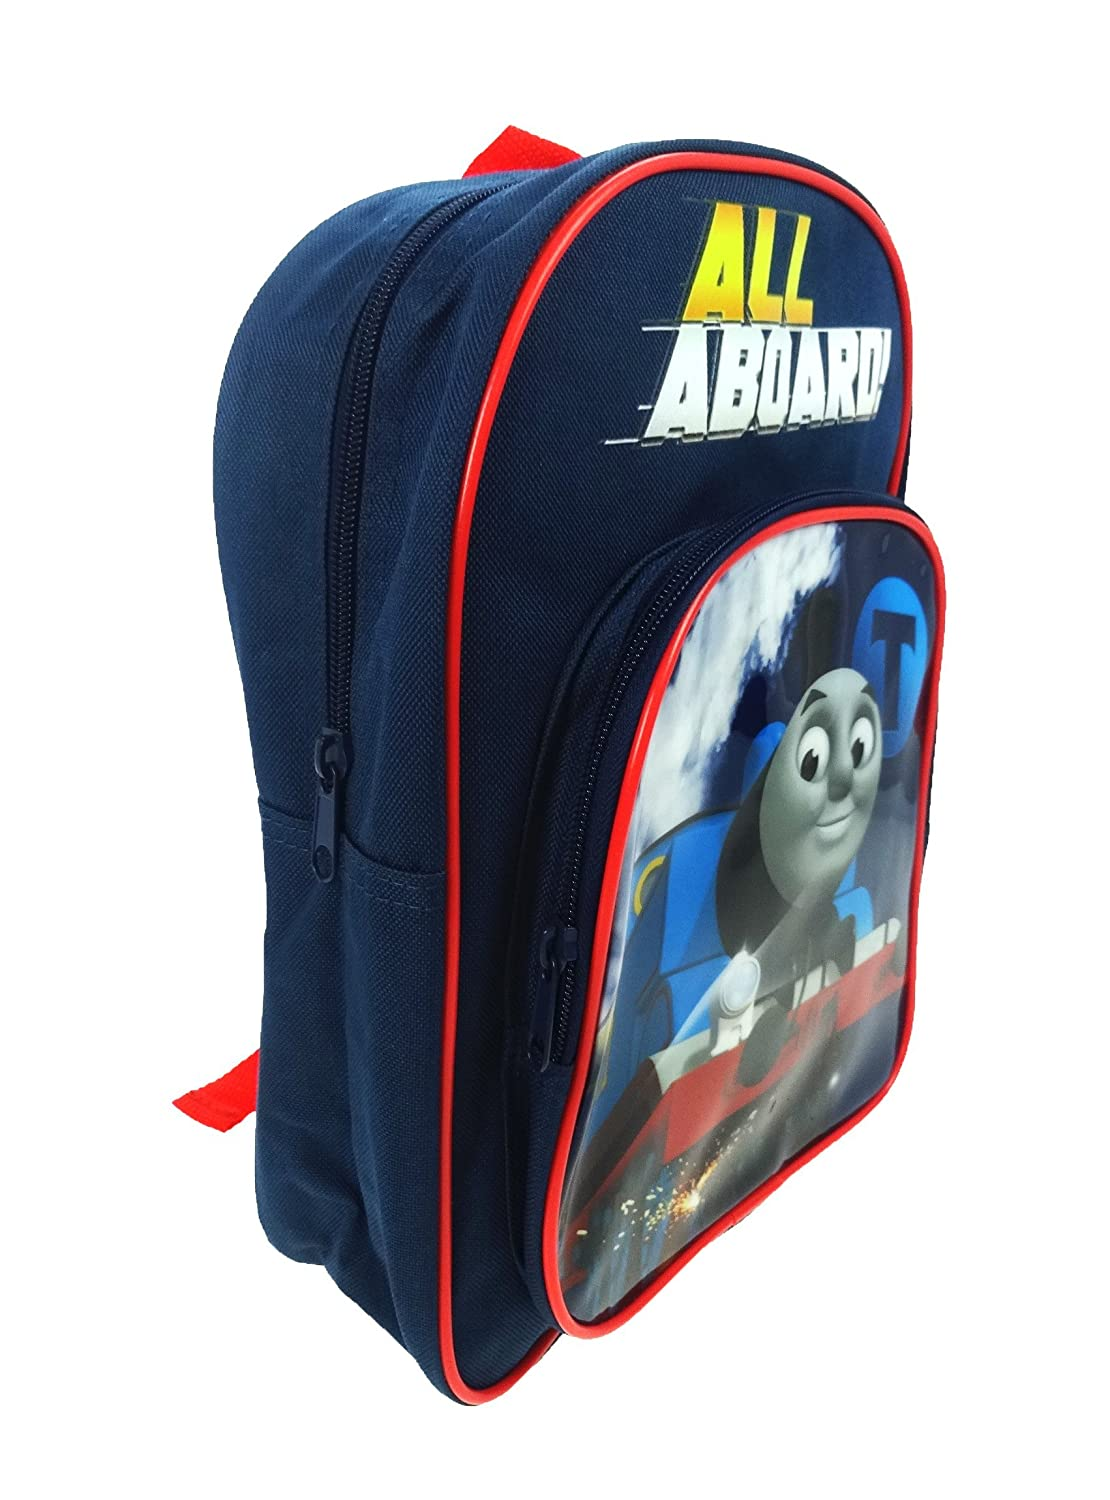 Thomas The Tank Engine Childrens Backpack 9 Liters 32 Cm Navy Blue Trade Mark Collections THOMAS001173